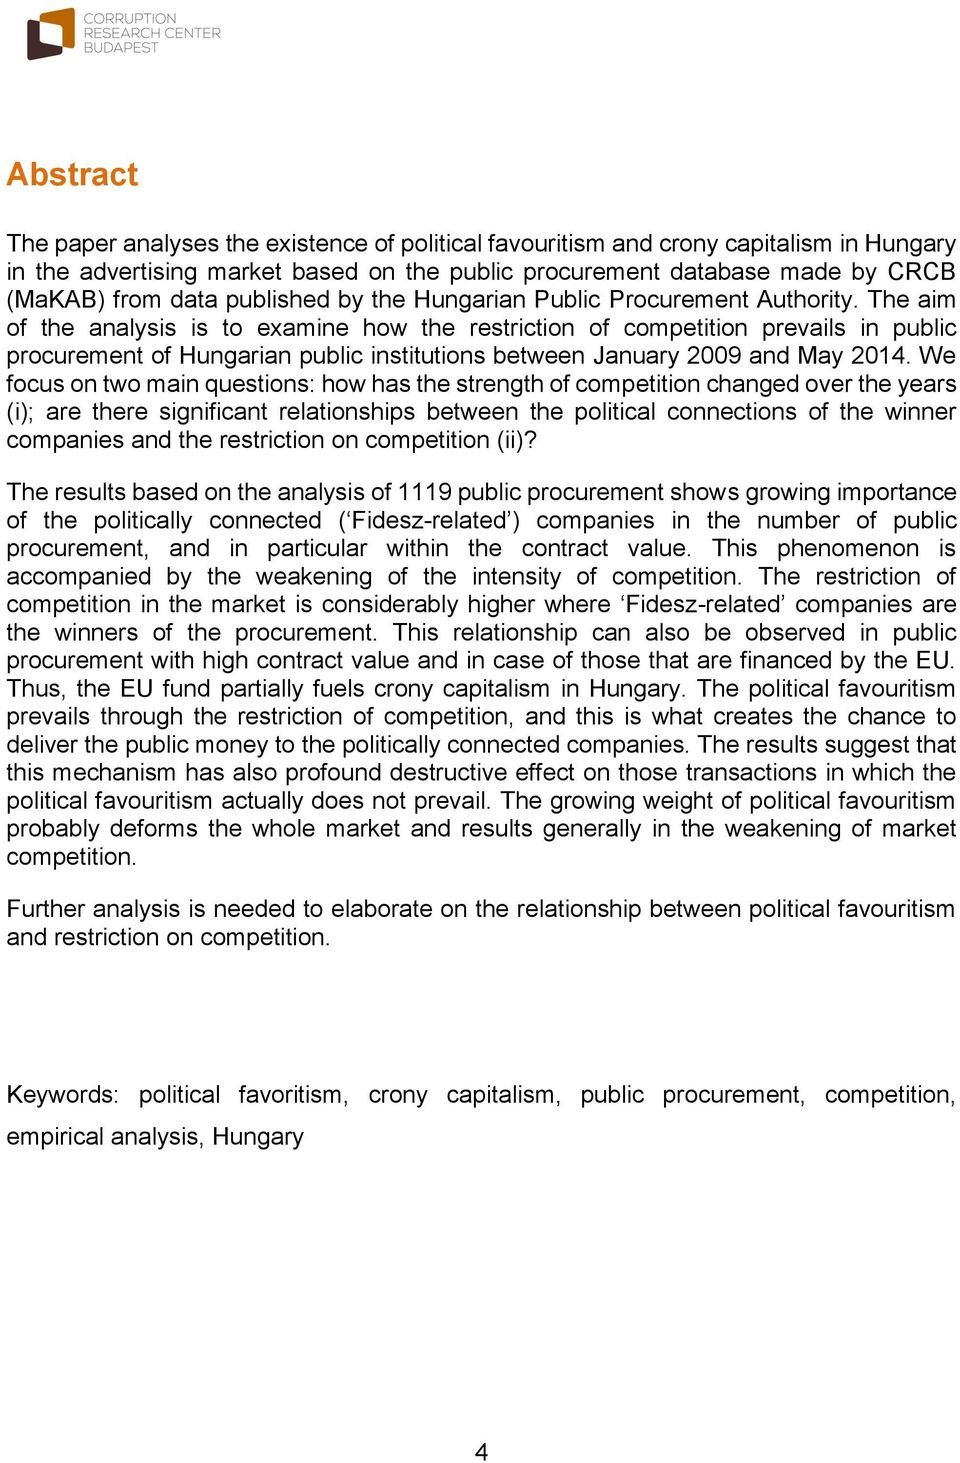 The aim of the analysis is to examine how the restriction of competition prevails in public procurement of Hungarian public institutions between January 2009 and May 2014.